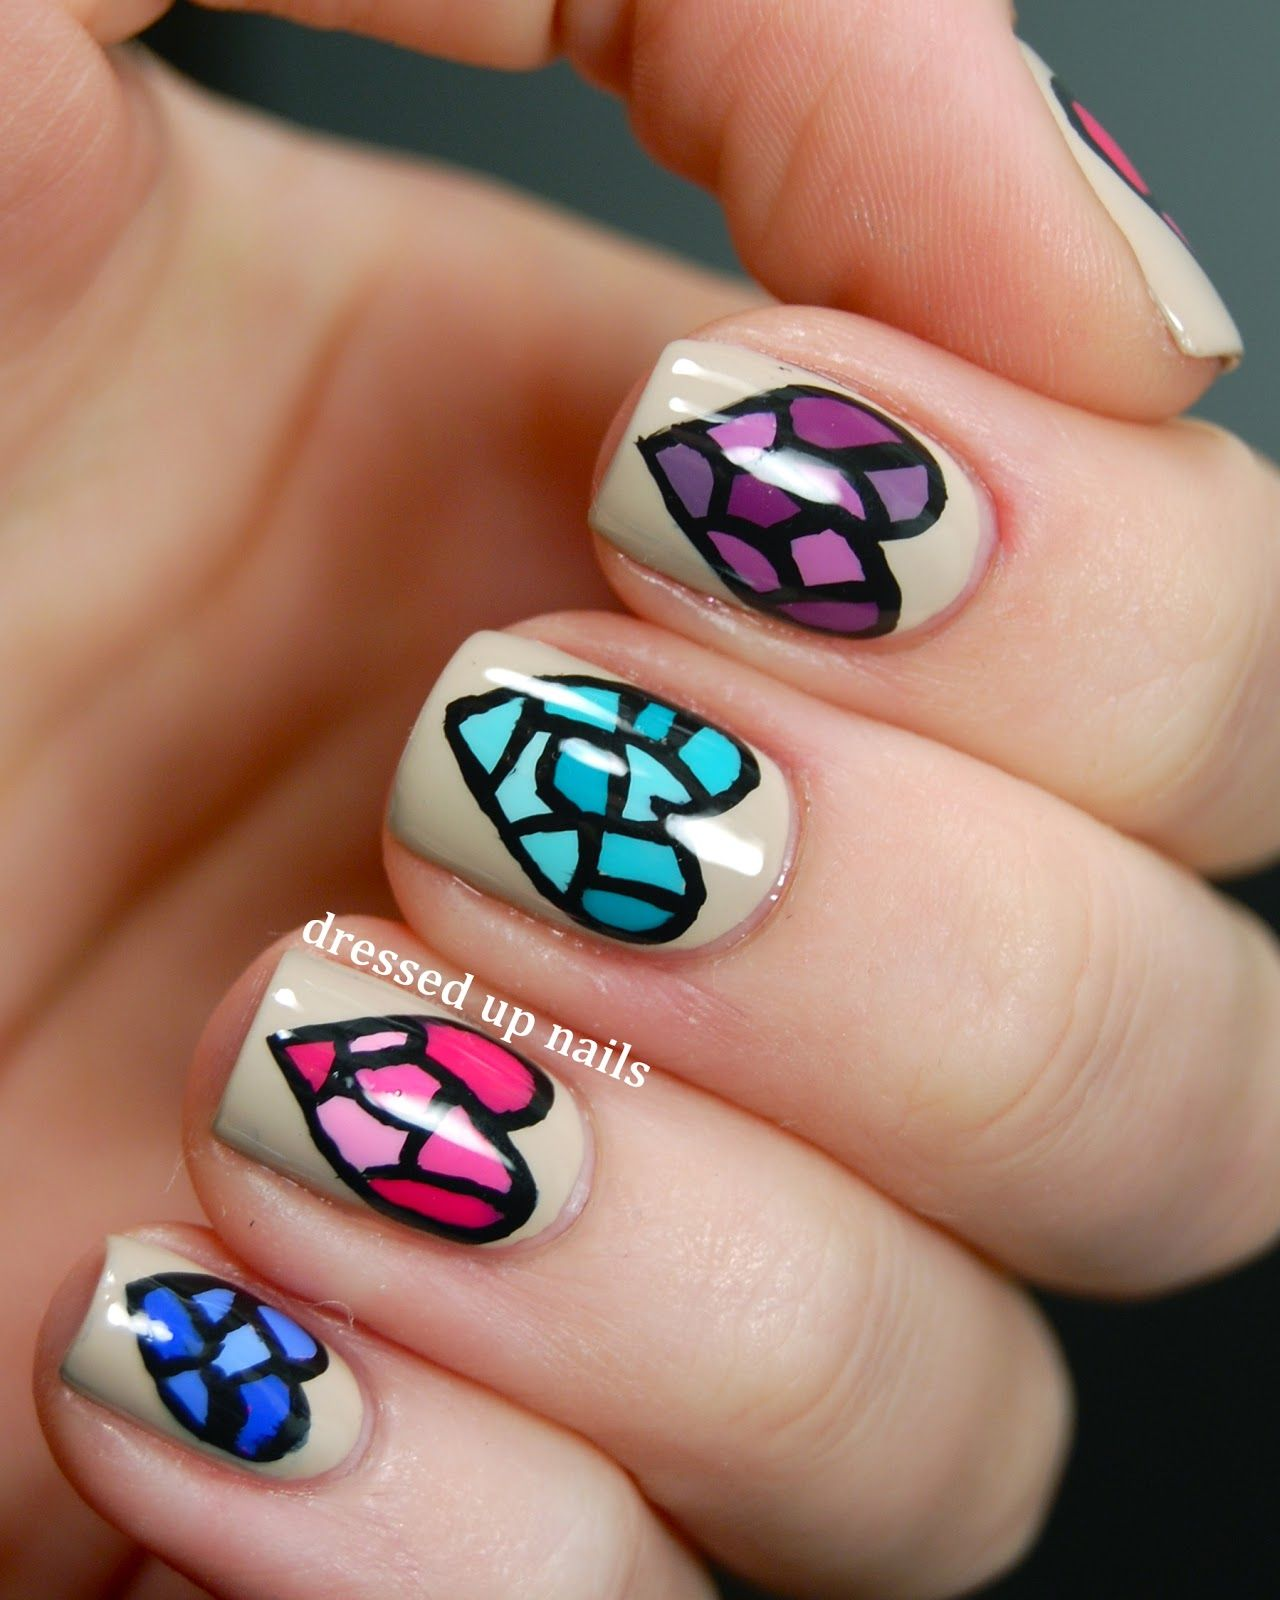 Nail Art Design Pictures 2 | Dressed Up Nails - stained glass heart ...